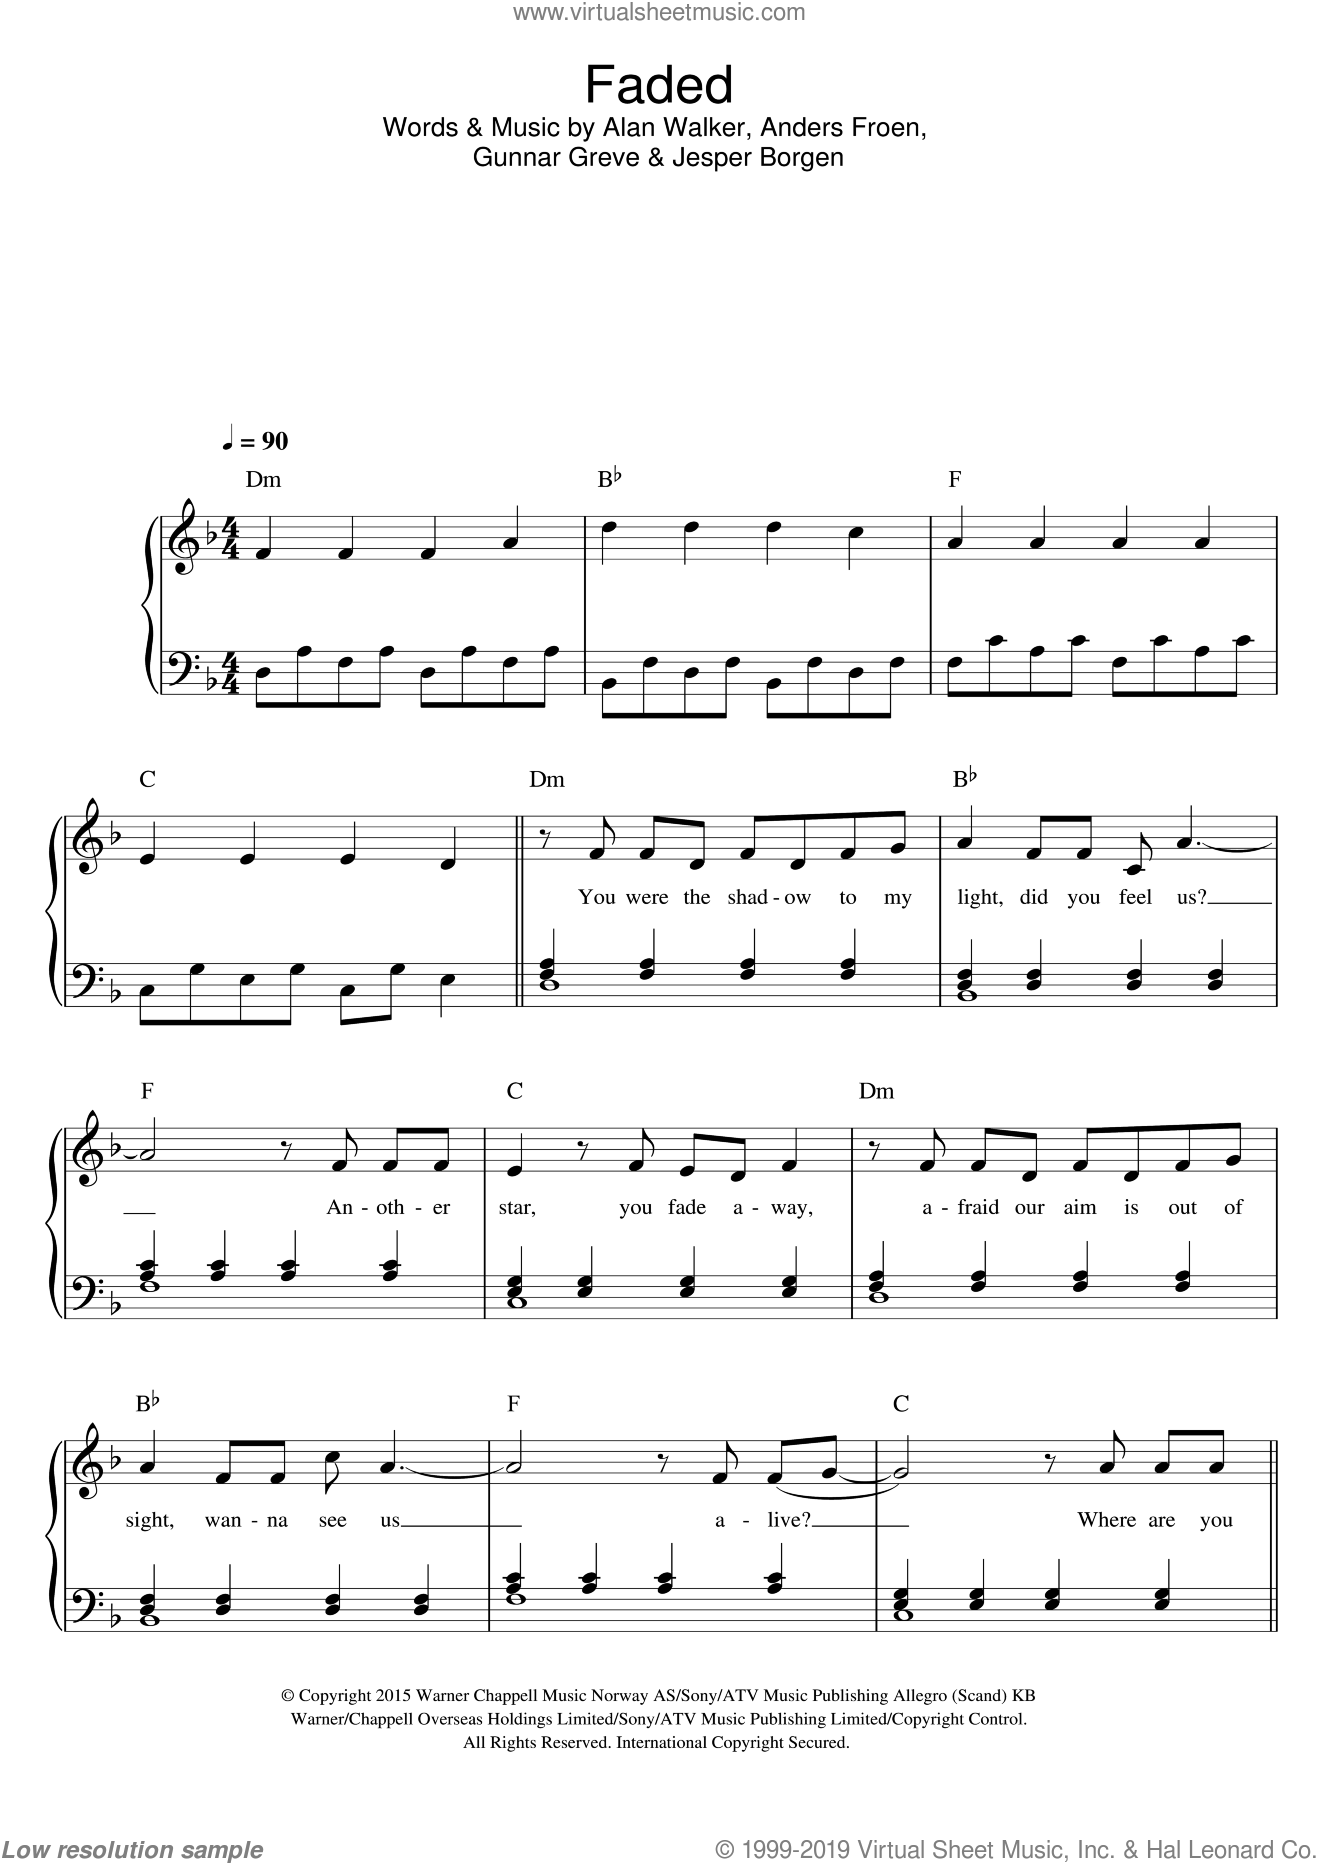 photograph relating to All of Me Easy Piano Sheet Music Free Printable called Walker - Light sheet audio for piano solo [PDF-interactive]